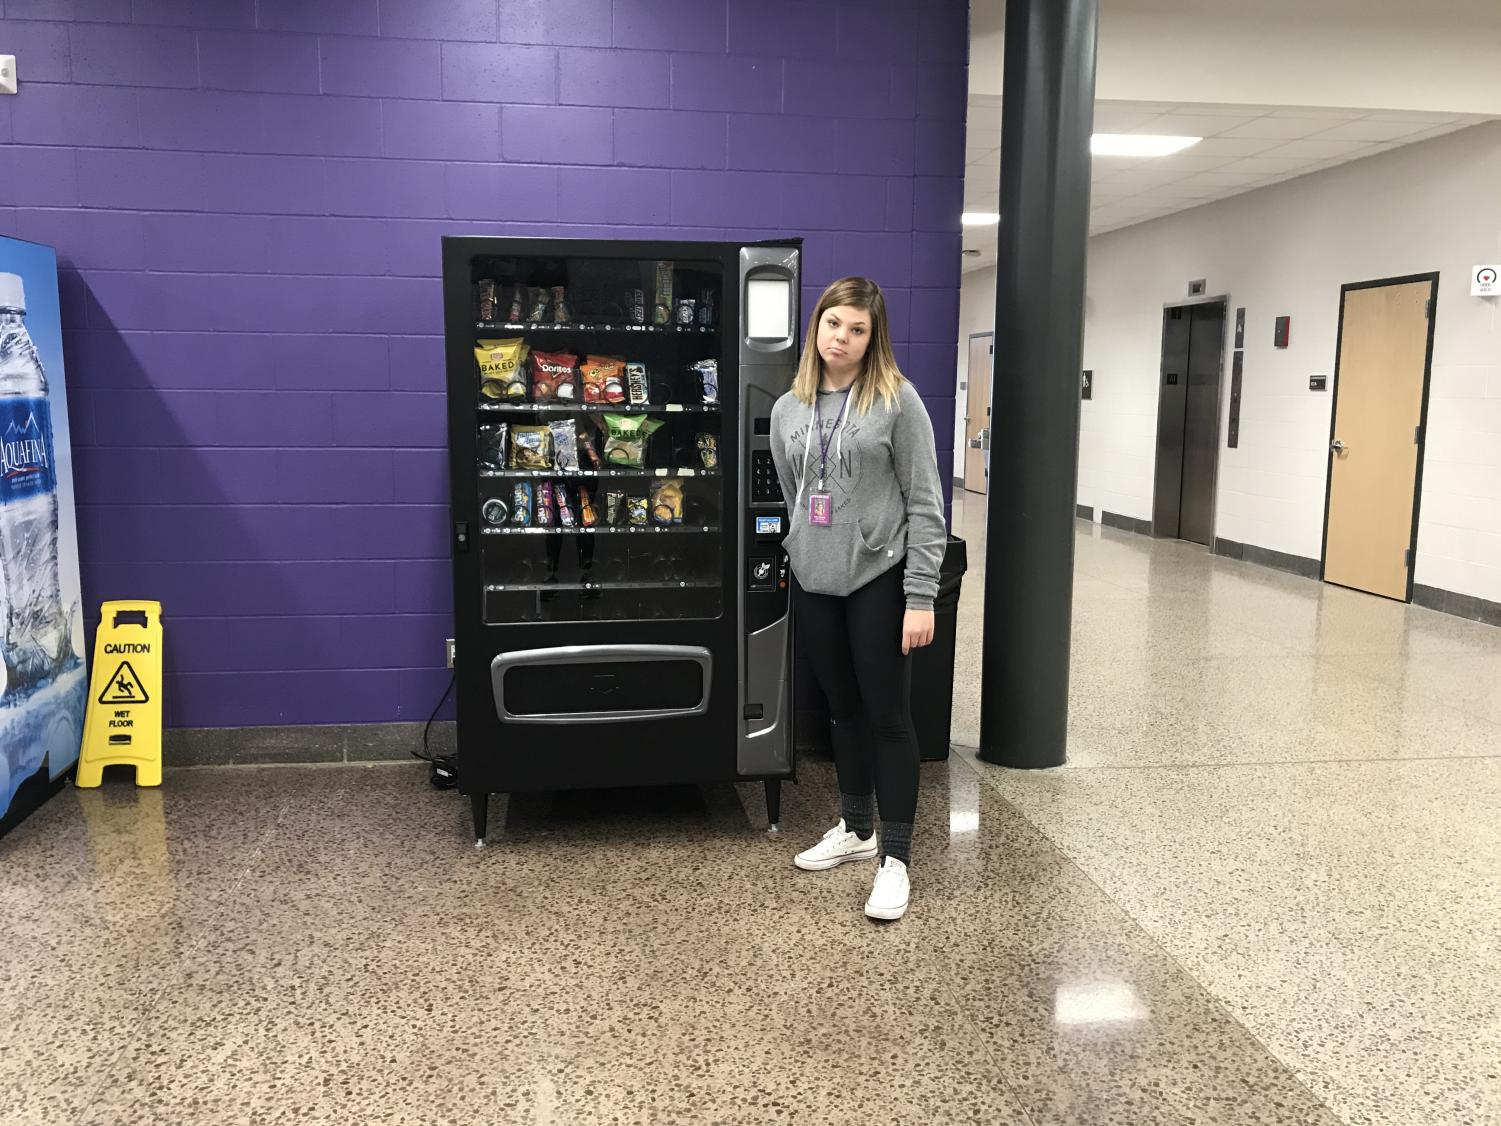 Students are sad about the vending machines being  shut down during school hours.